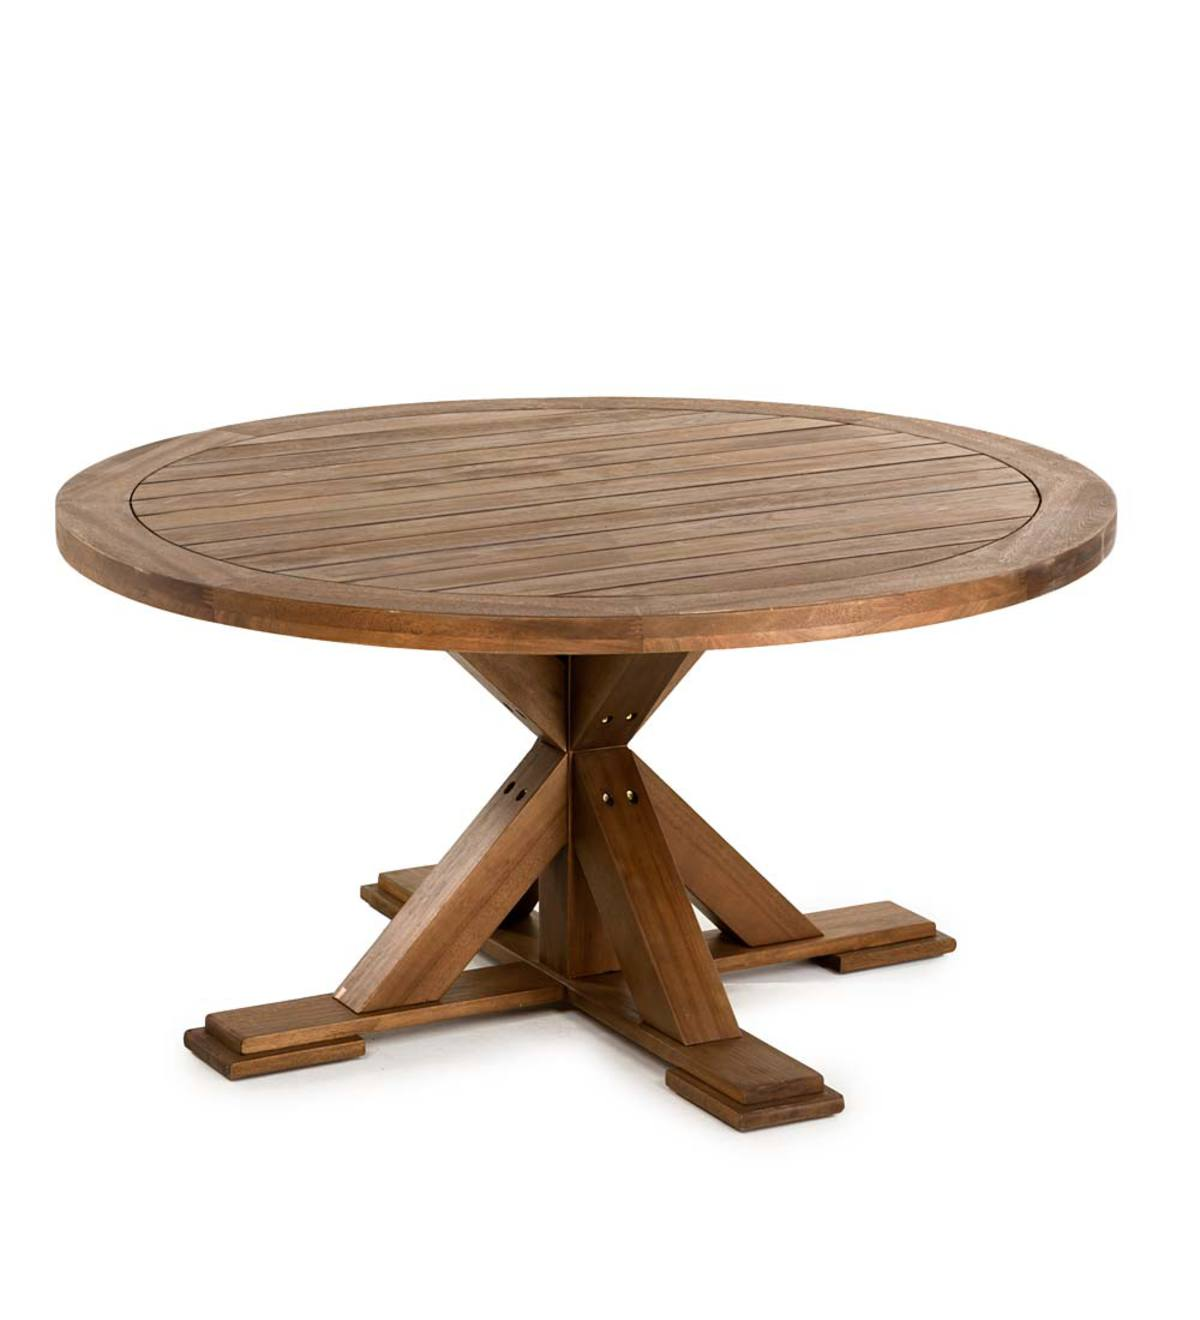 Claremont Eucalyptus Round Dining Table